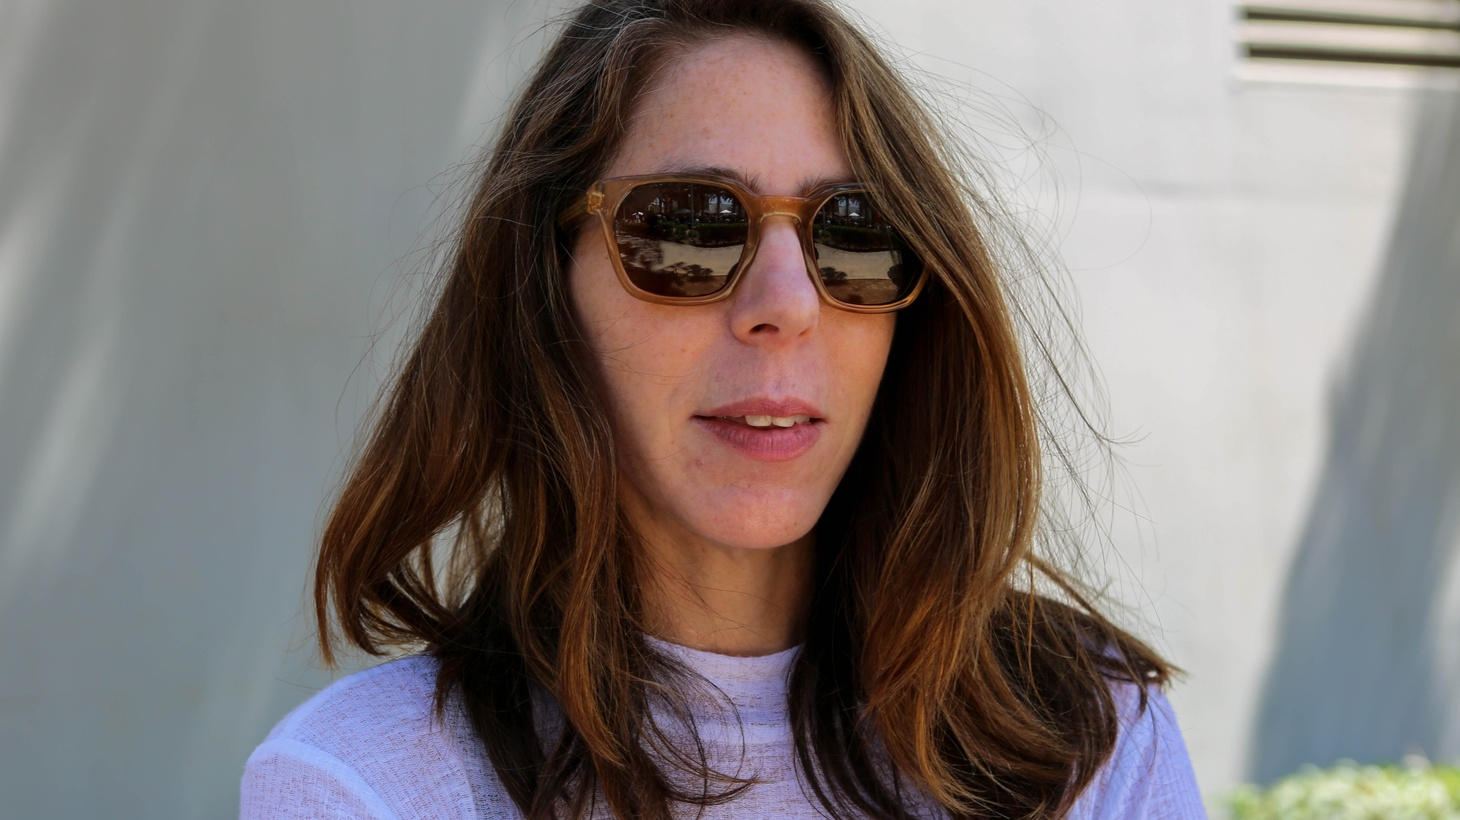 Rachel Kushner discussesThe Mars Room,a novel set in a women's correctional facility, a dazzling novel full of surprising details that can't be forgotten.